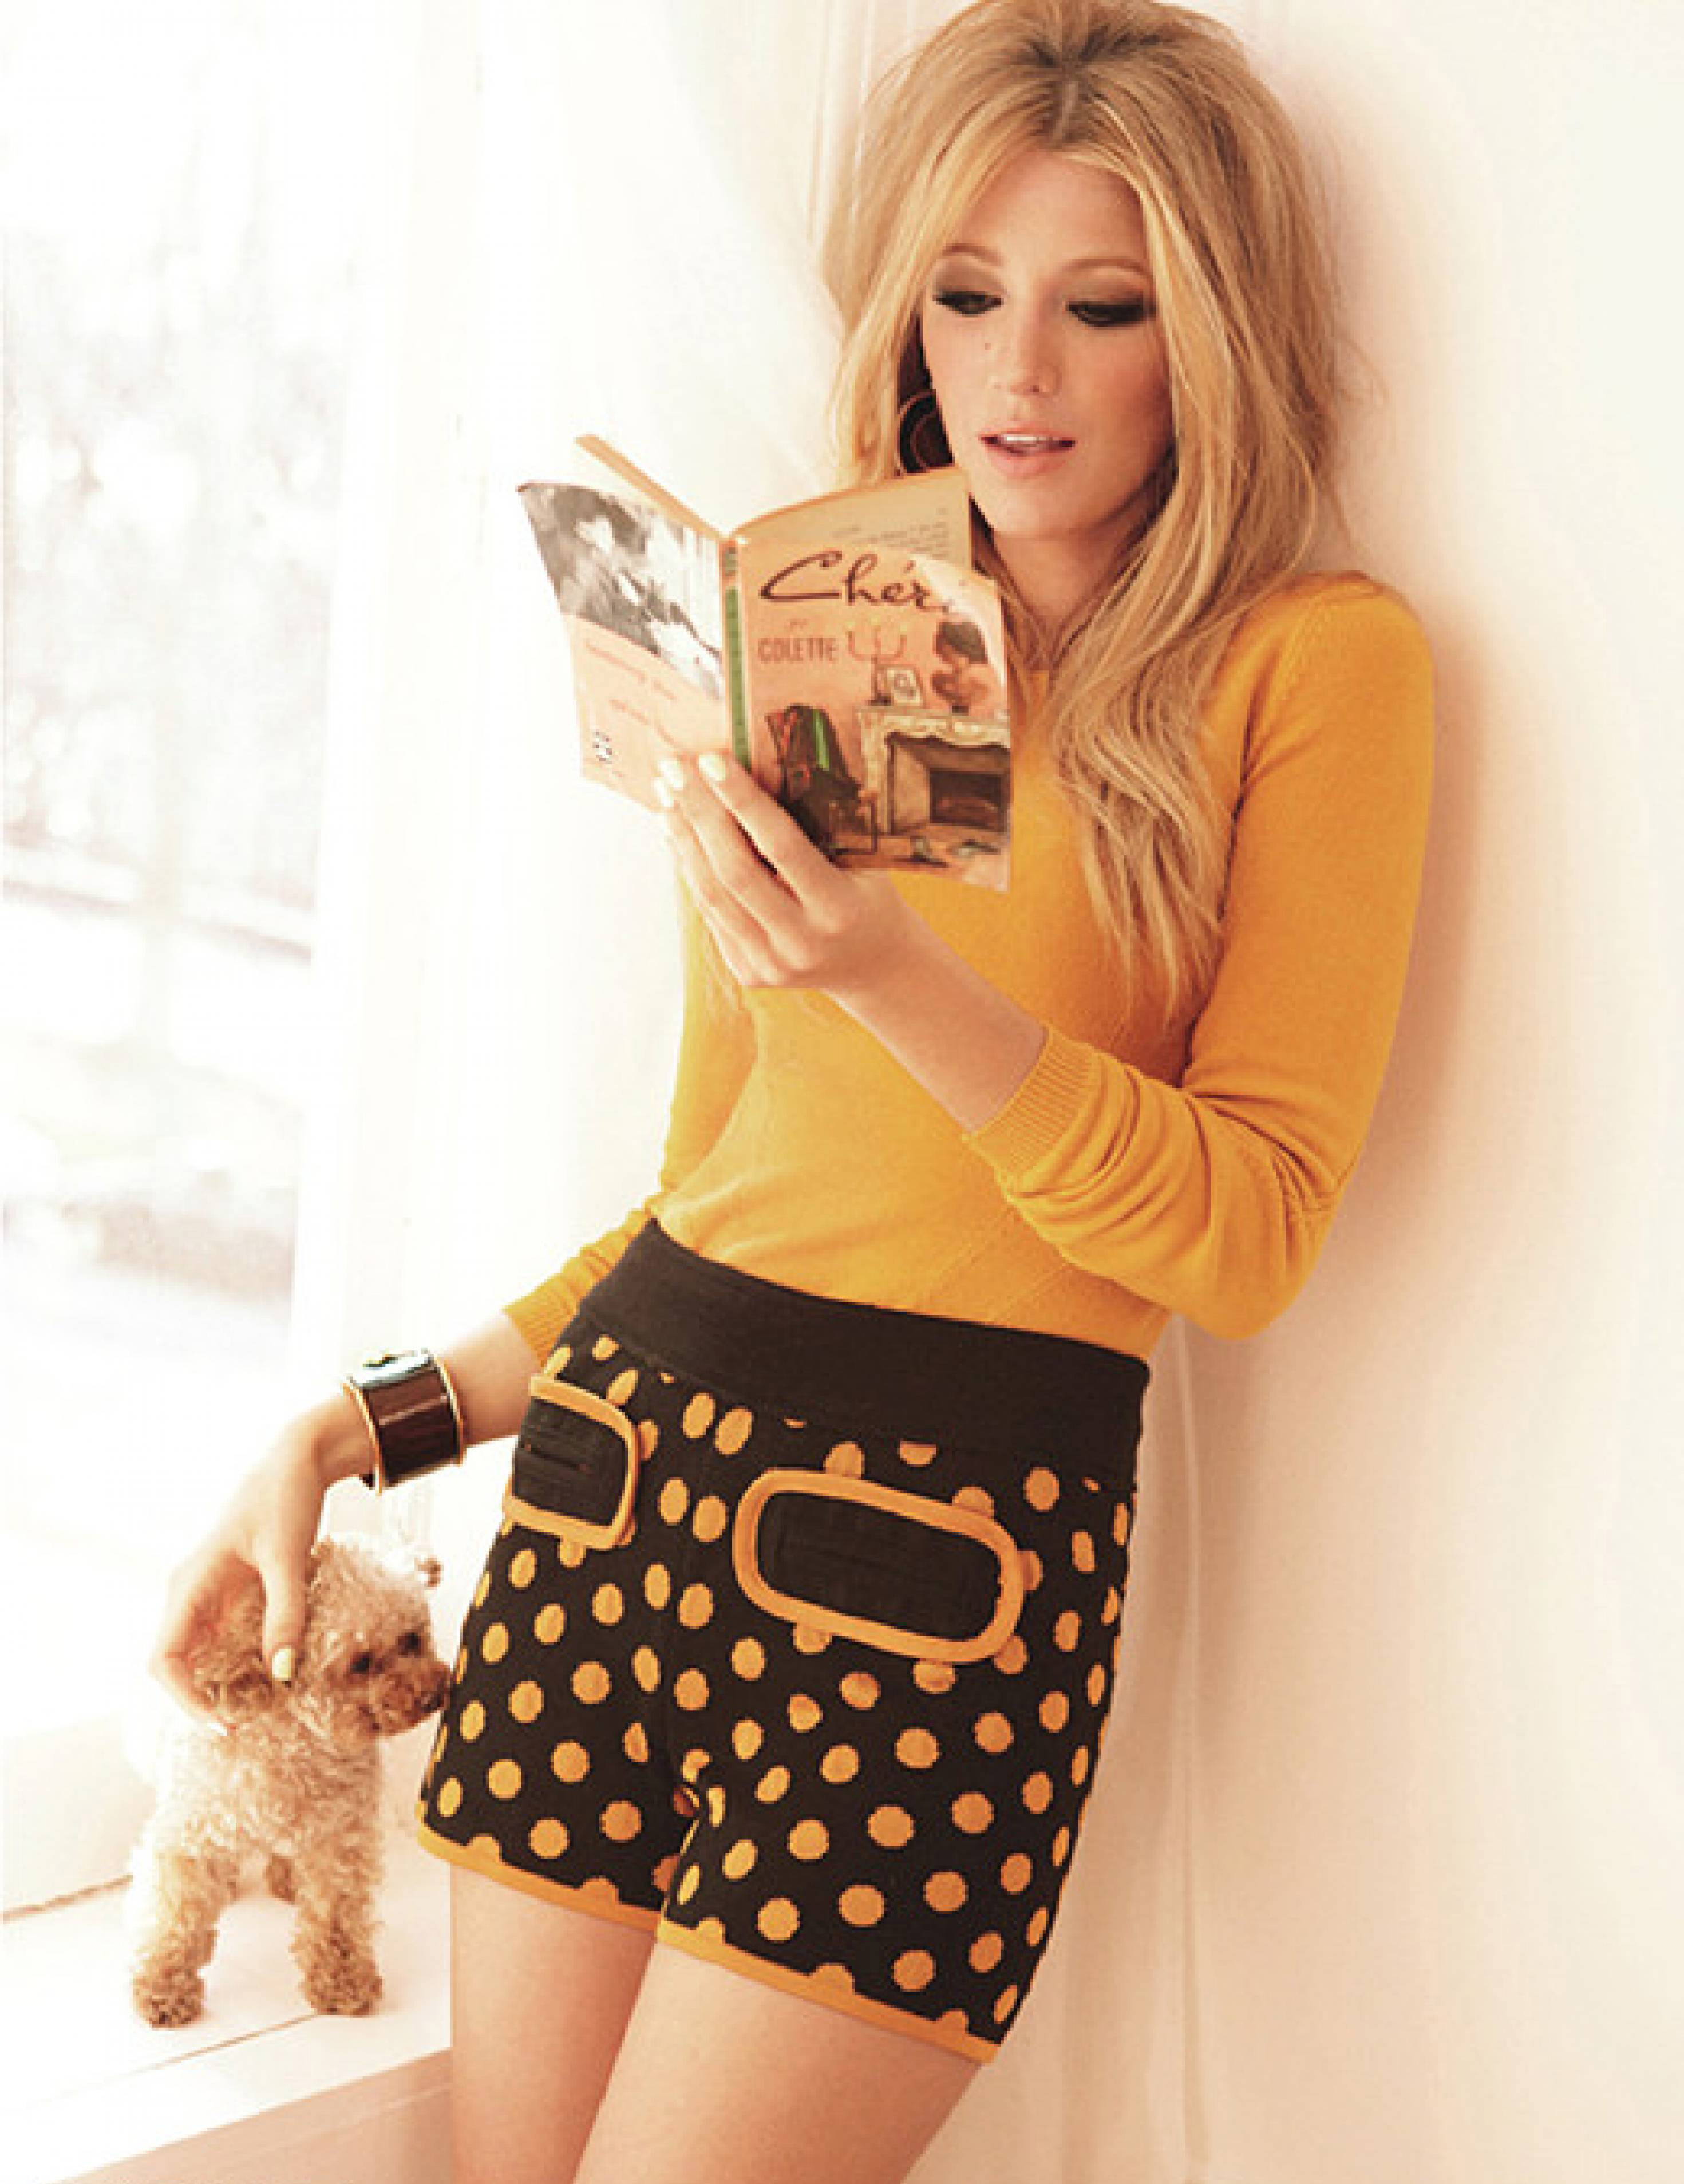 Blake Lively 2018 Wallpapers Wallpaper Cave